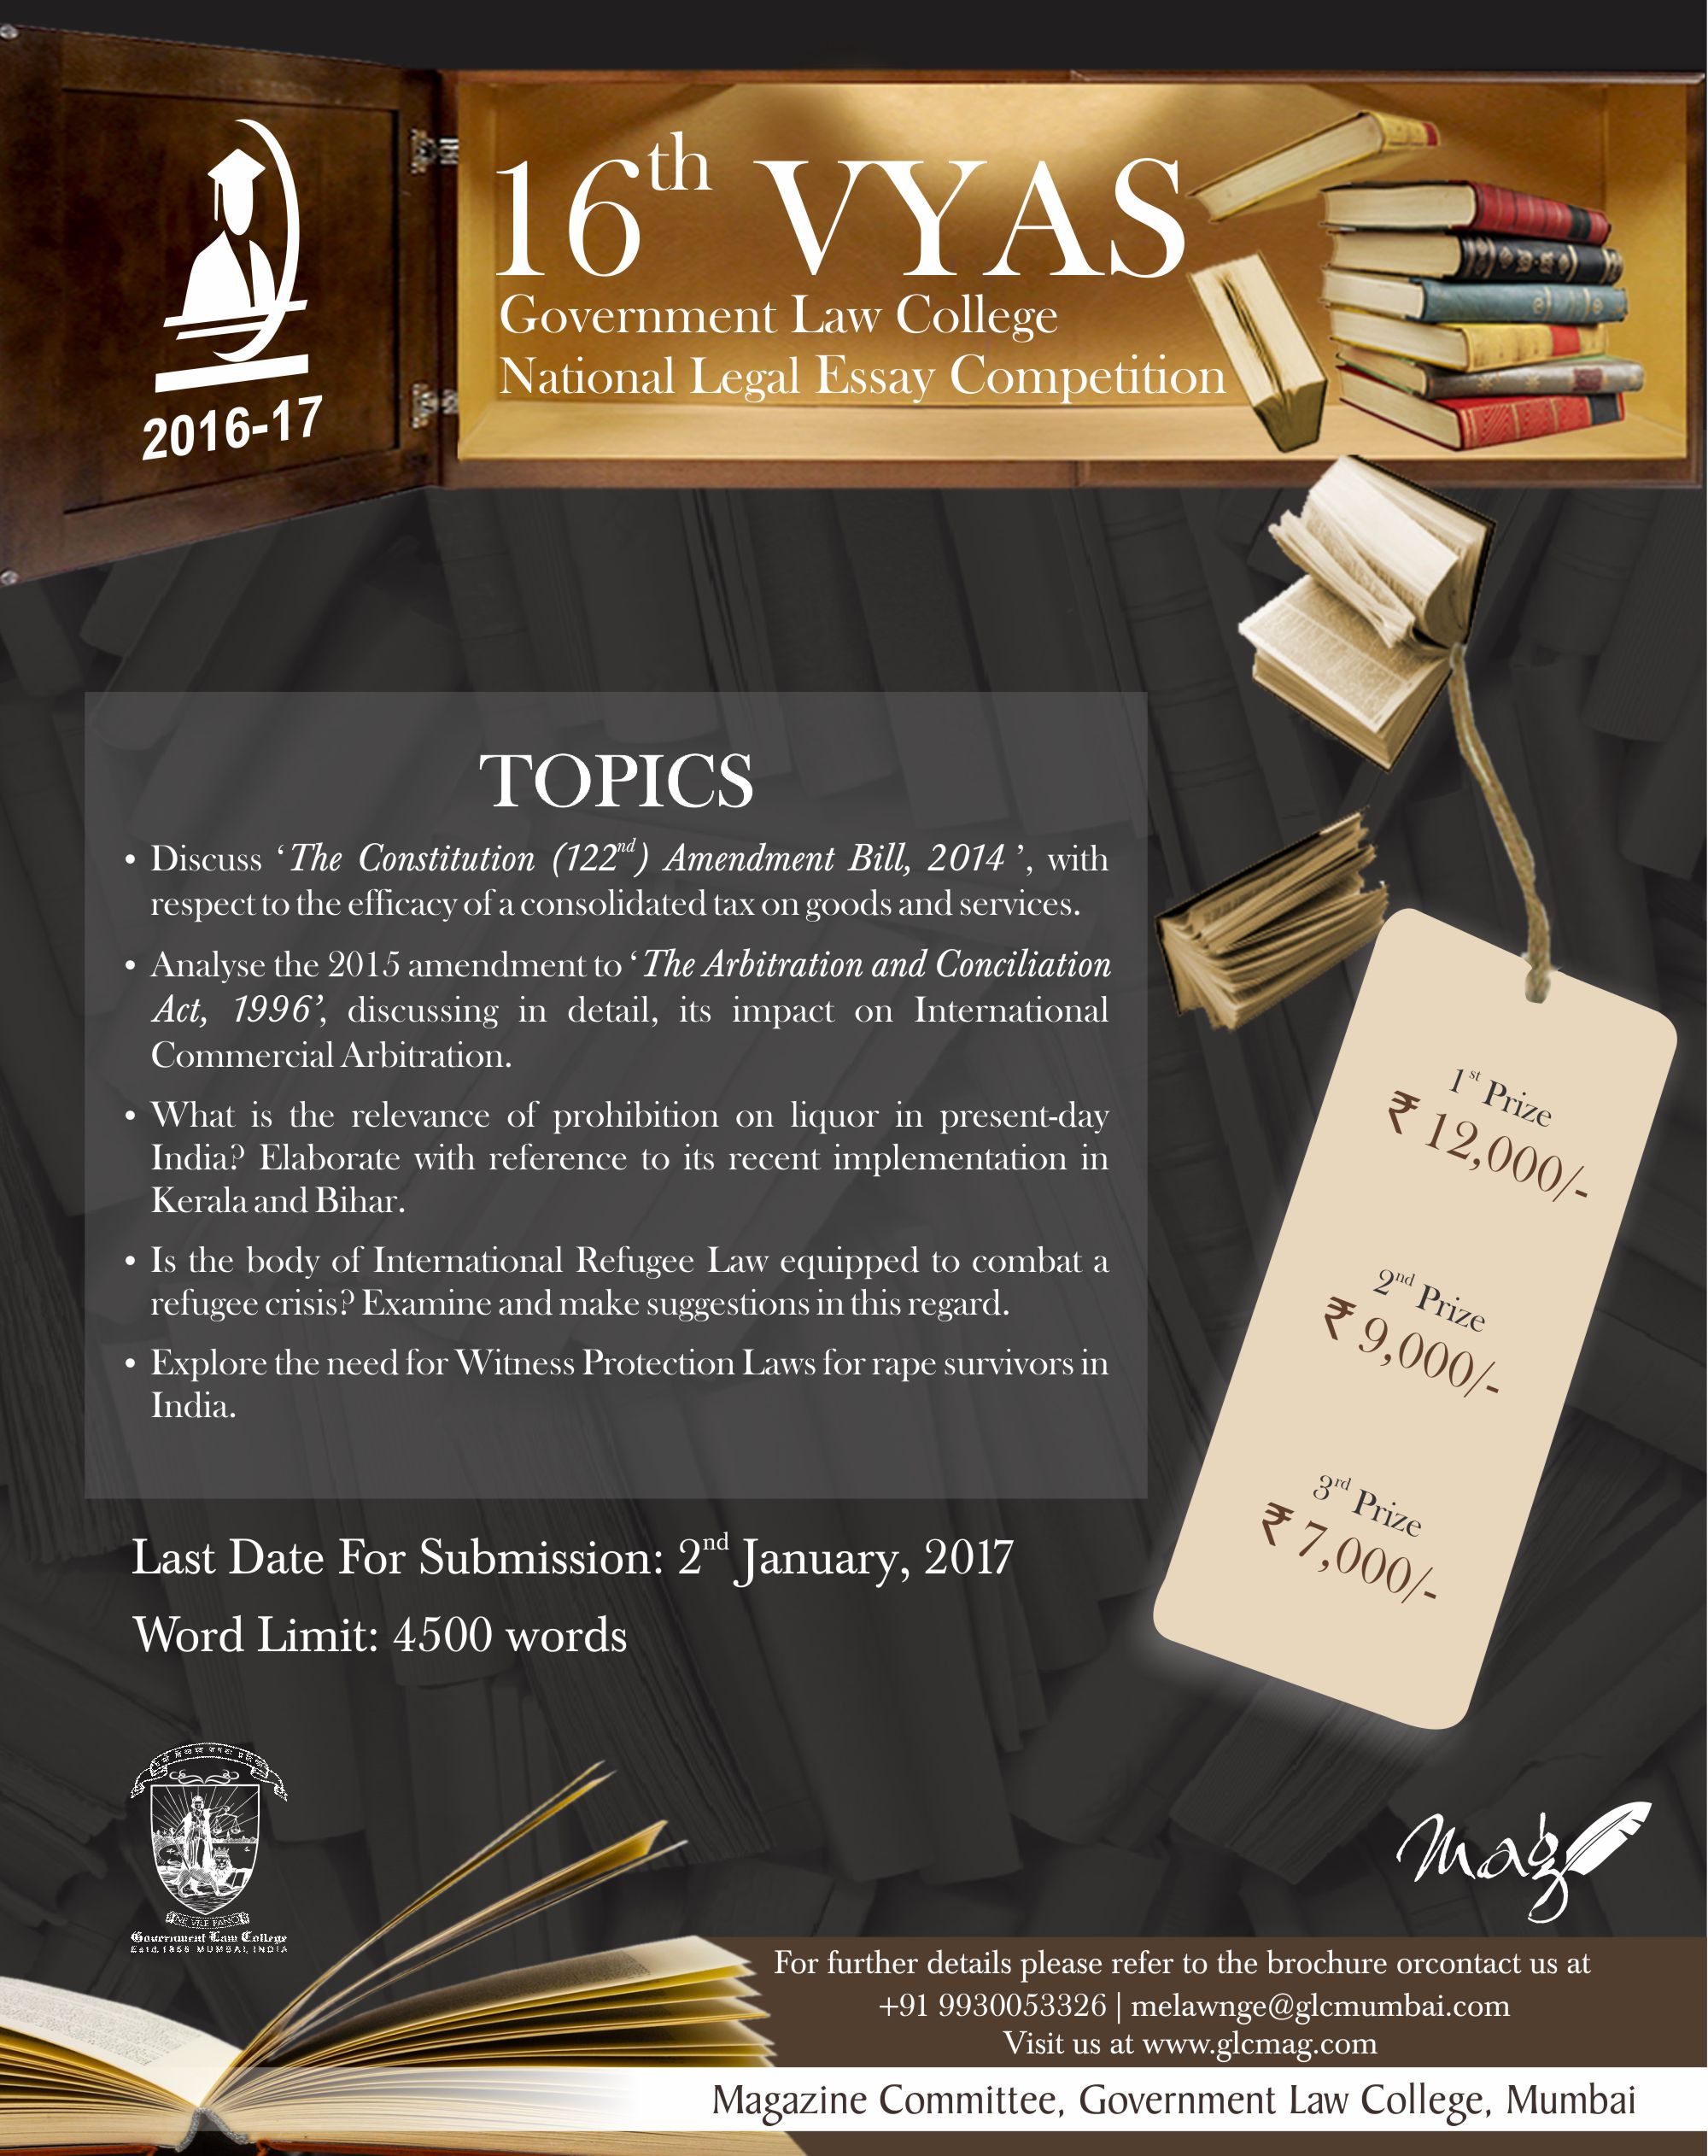 Vyas Government Law College National Legal Essay Competition 2017